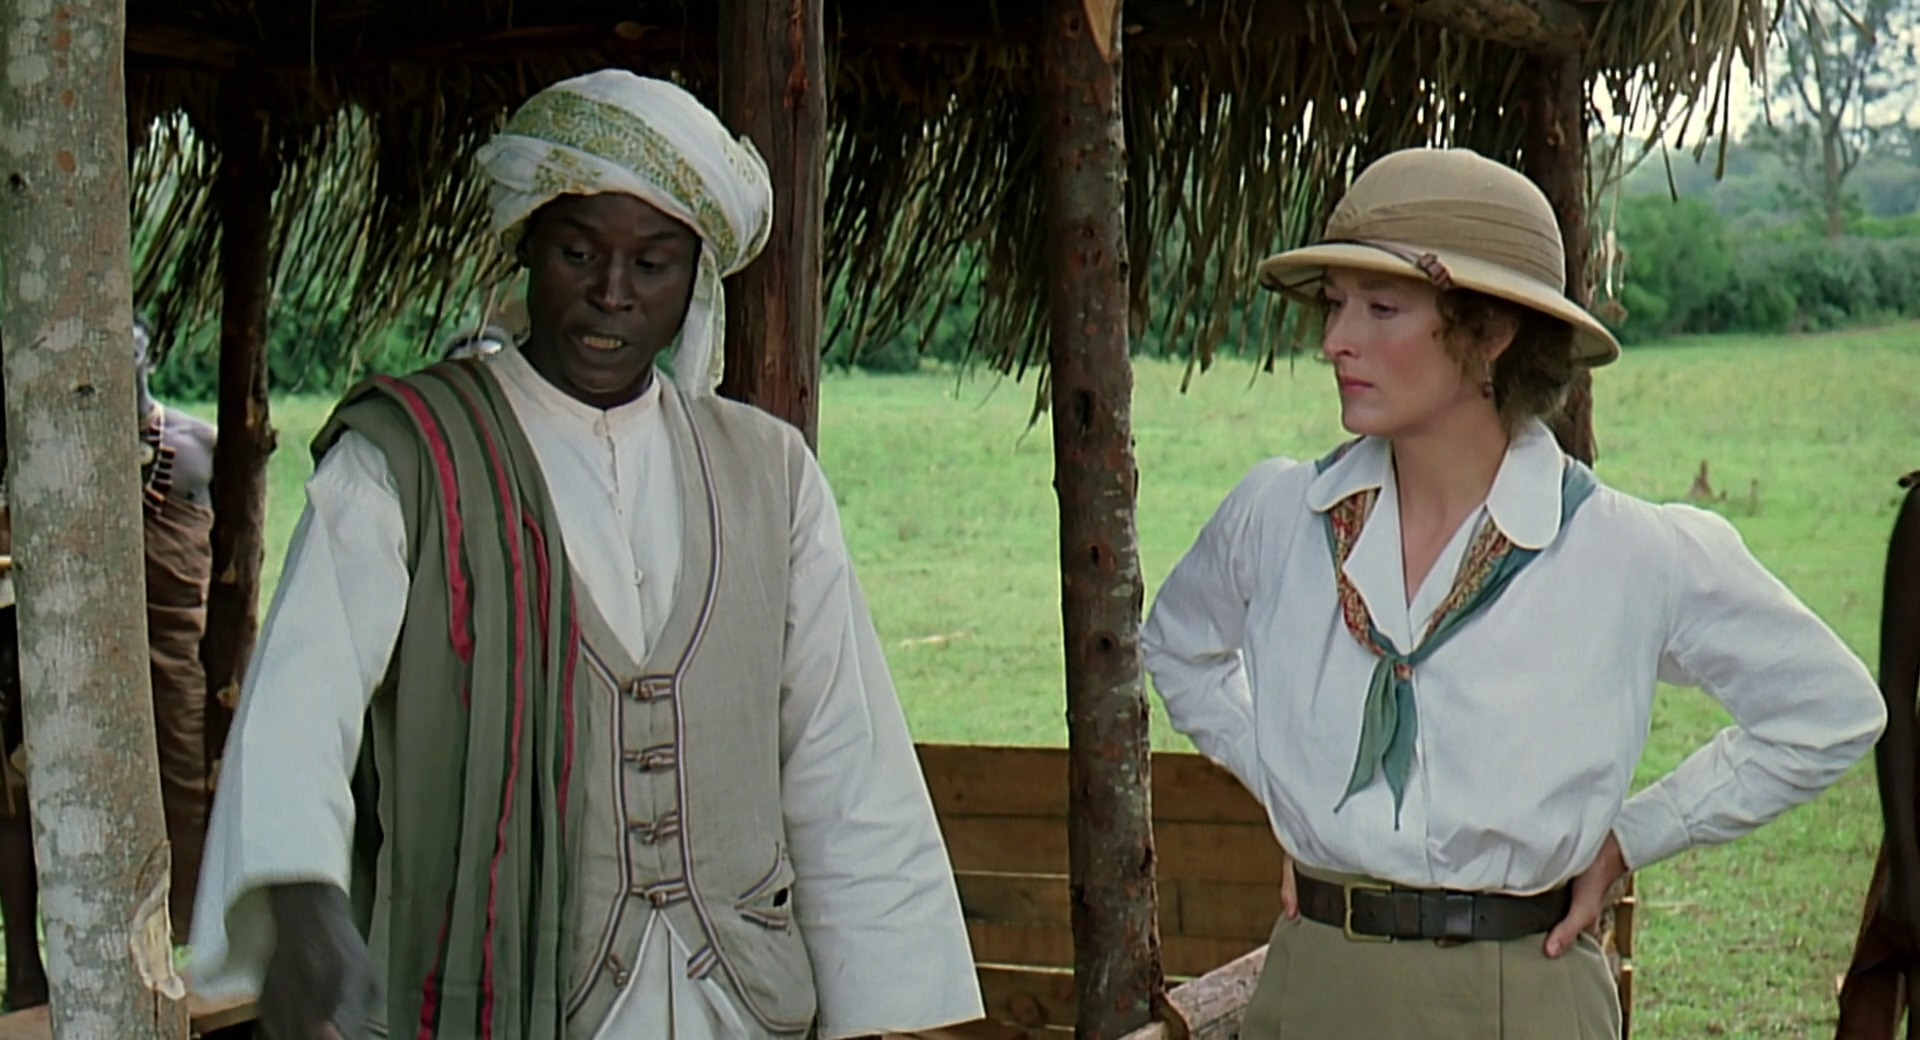 A white woman wearing a hat and white shirt with khaki pants is standing next to a black African man wearing a turban, white shirt and tan vest.